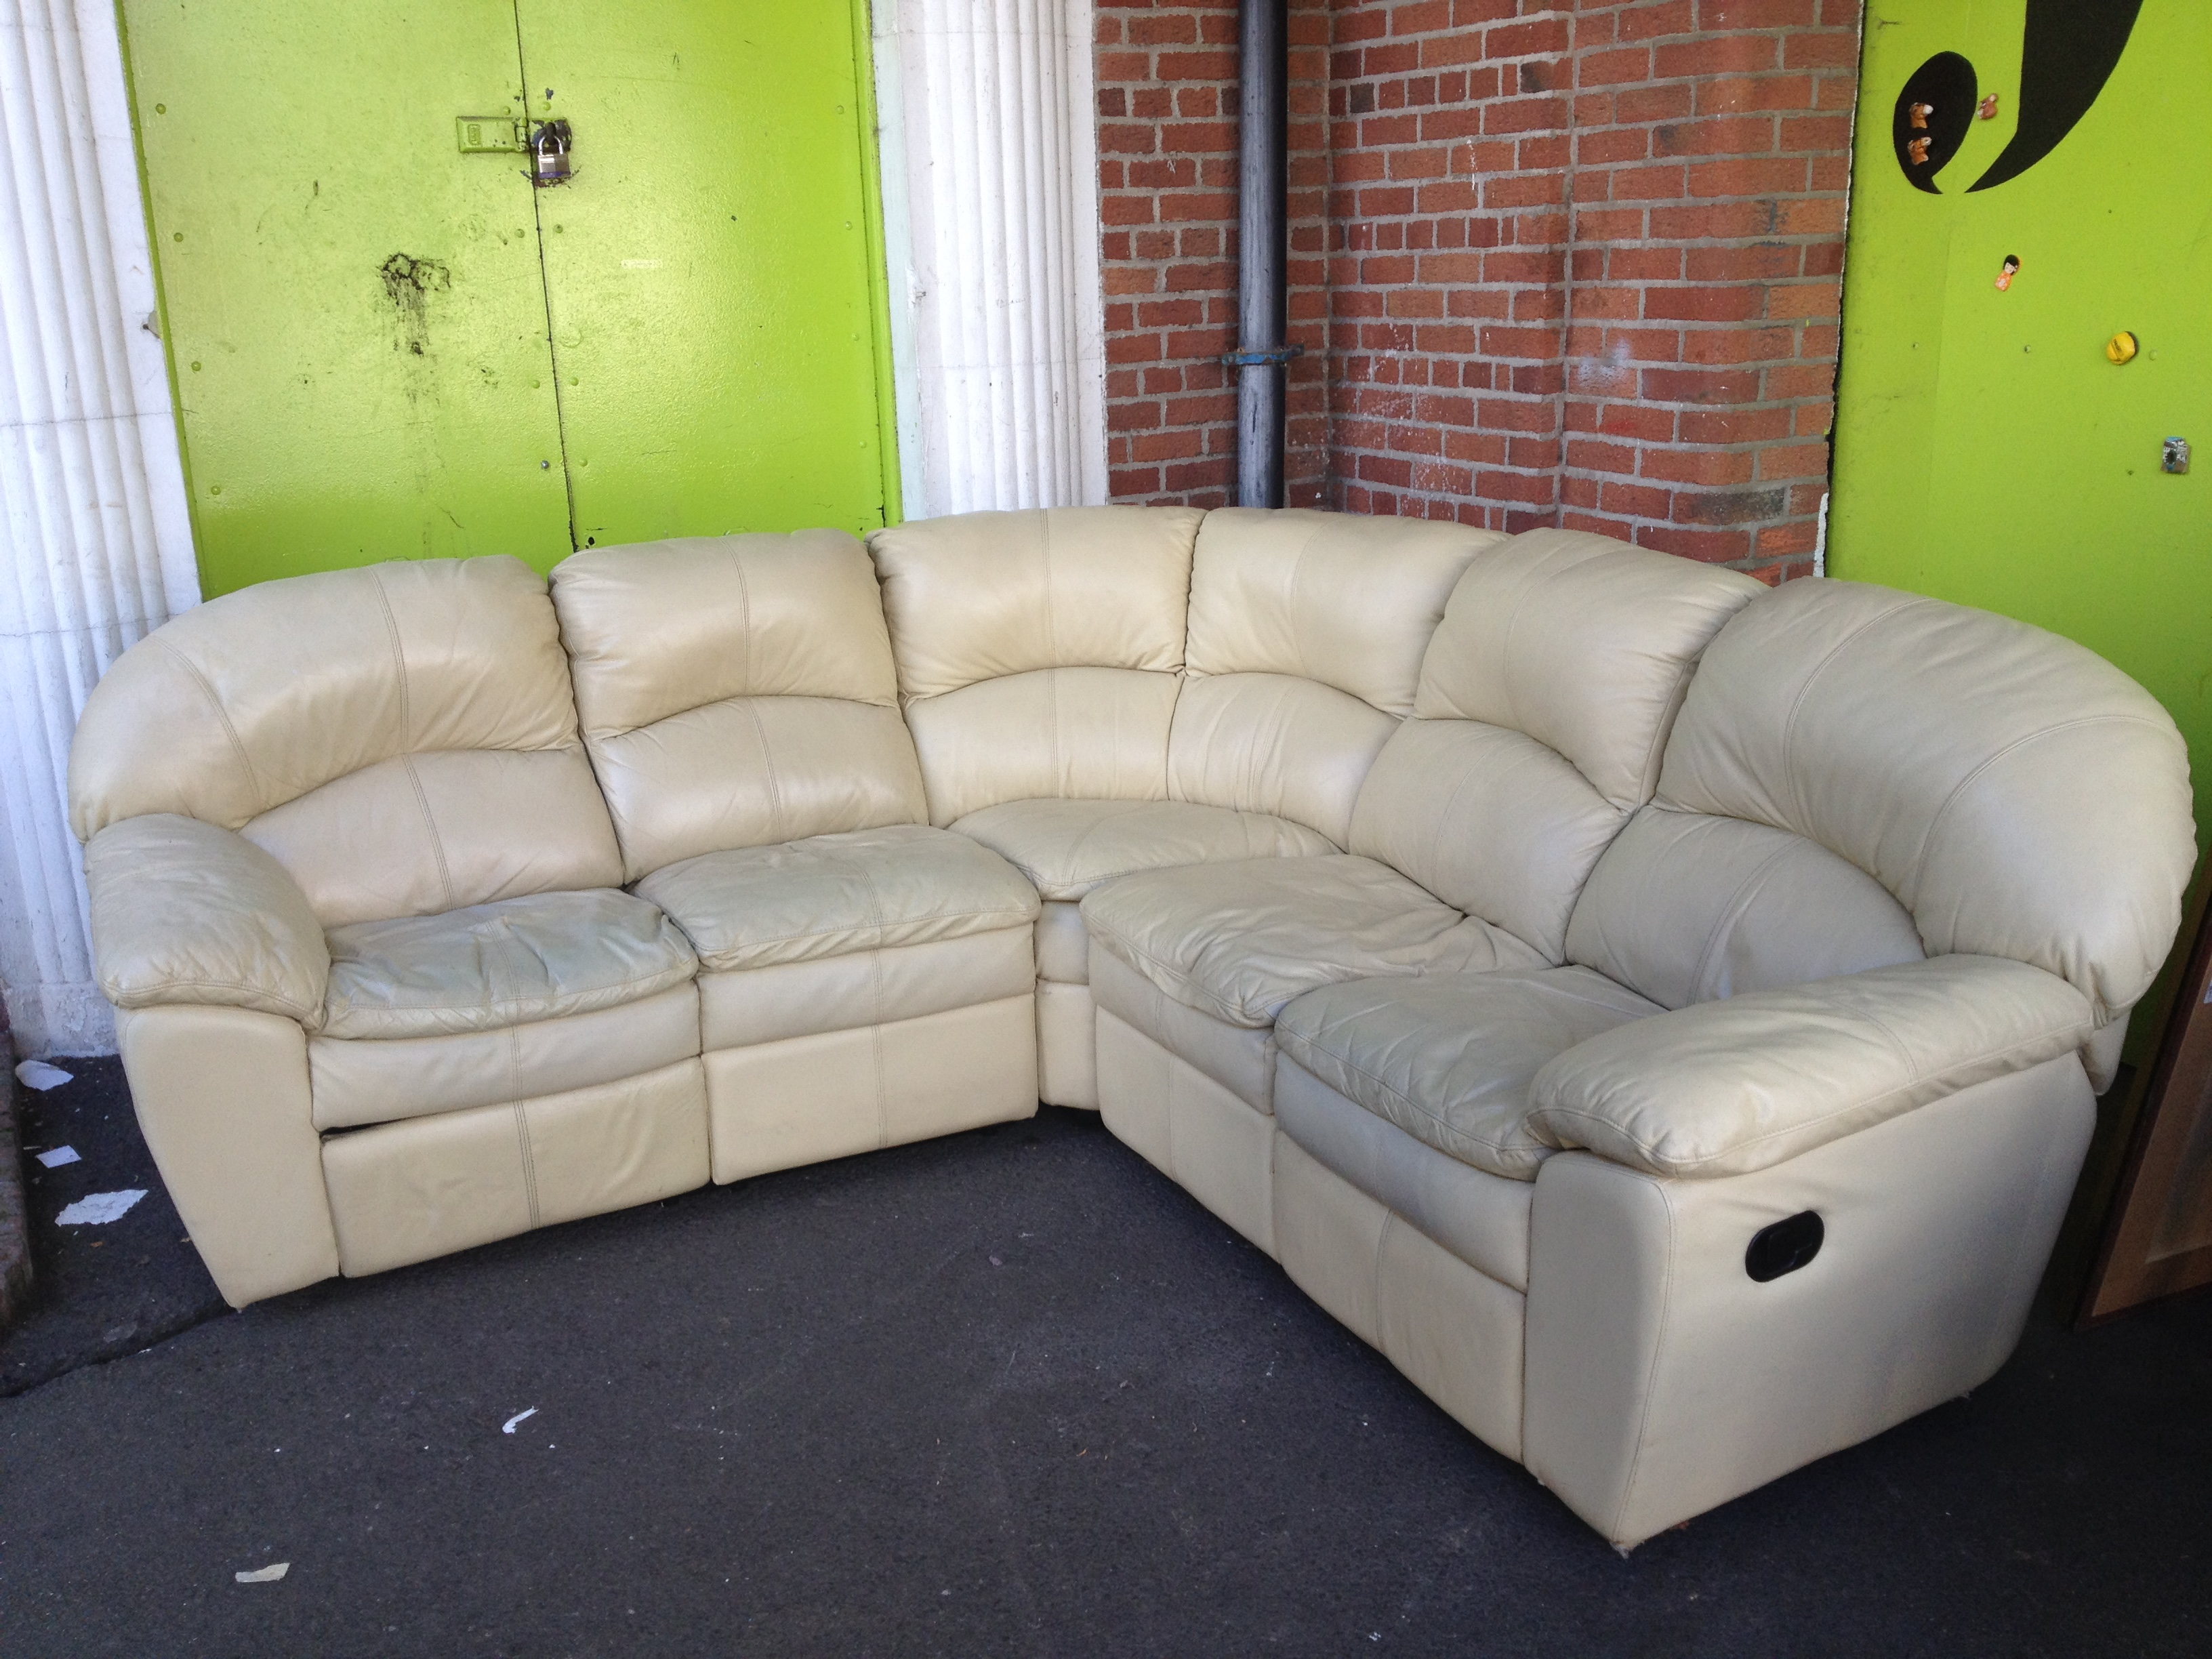 2nd Hand Sofas For Sale Buy Cheap Sofas And Couches In Dublin